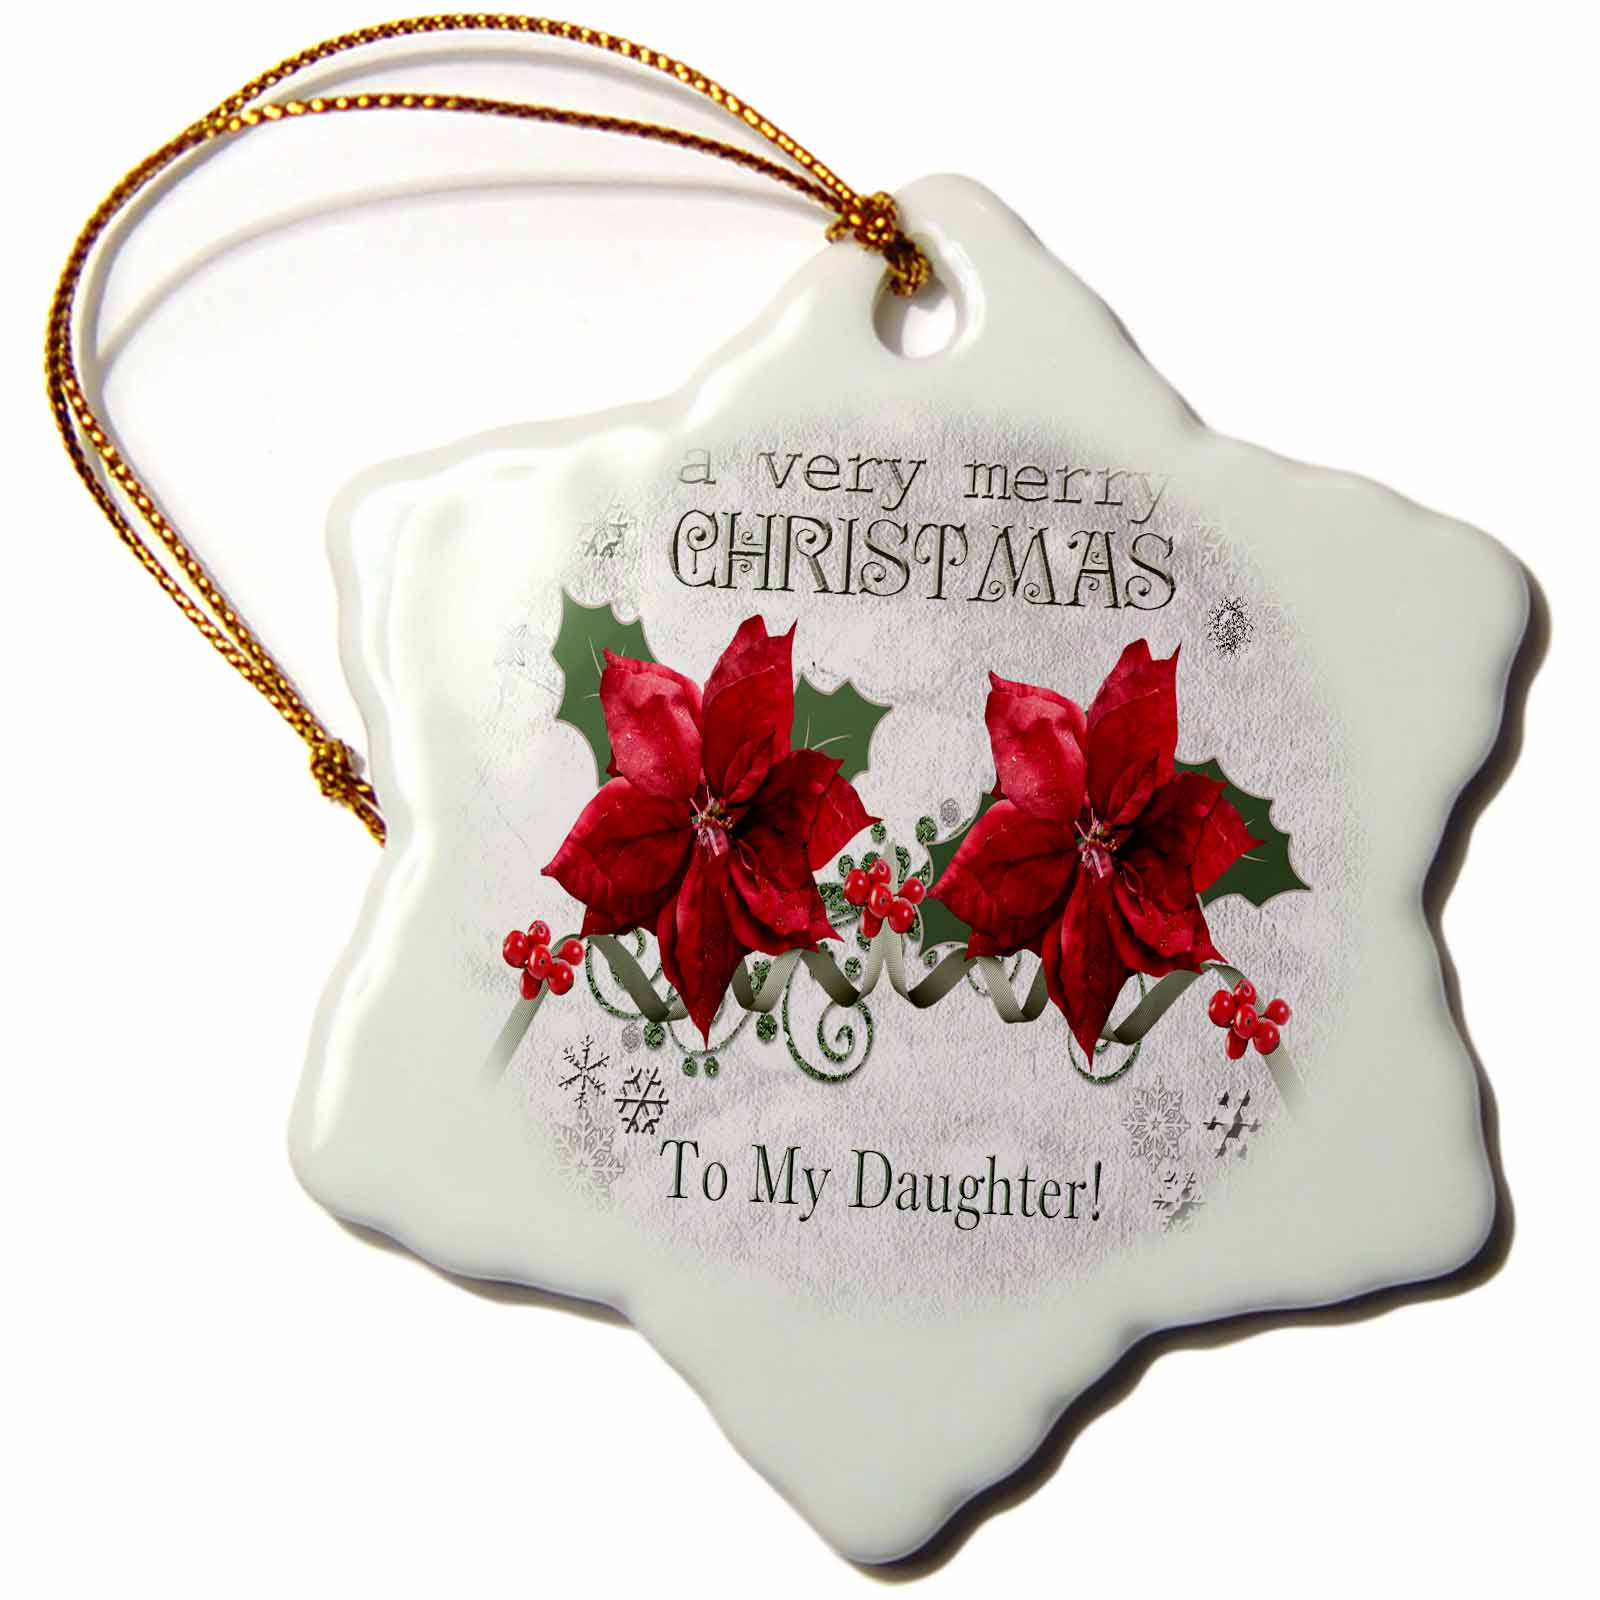 3dRose Berries and Poinsettias, a very merry Christmas, To My Daughter, Snowflake Ornament, Porcelain, 3-inch